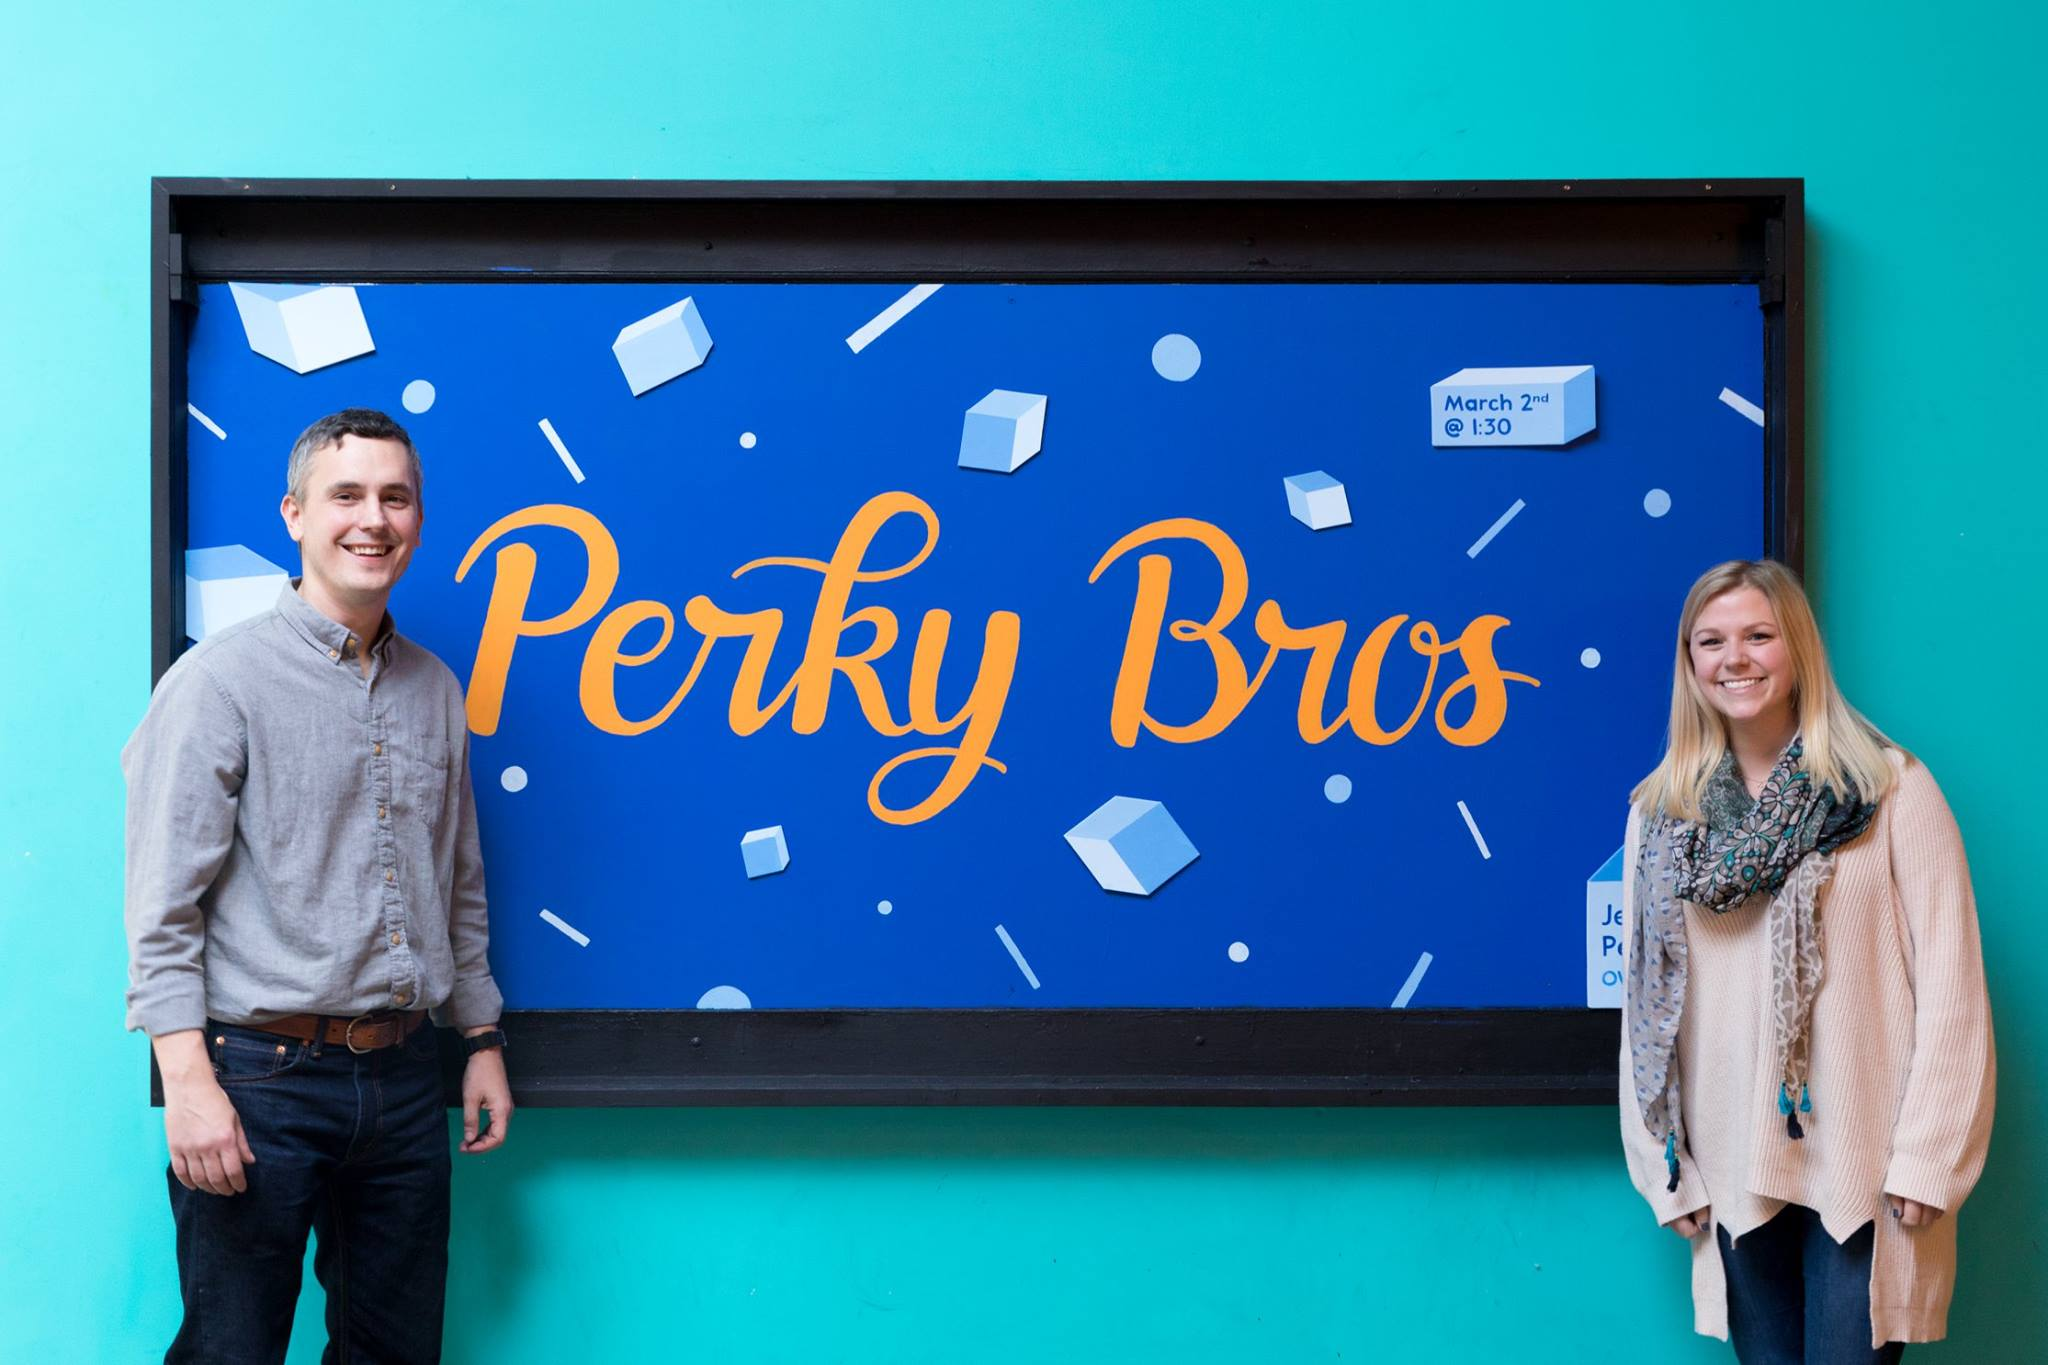 Designed and hand painted a chalkboard for forum speaker Jeff Perky of  Perky Bros .